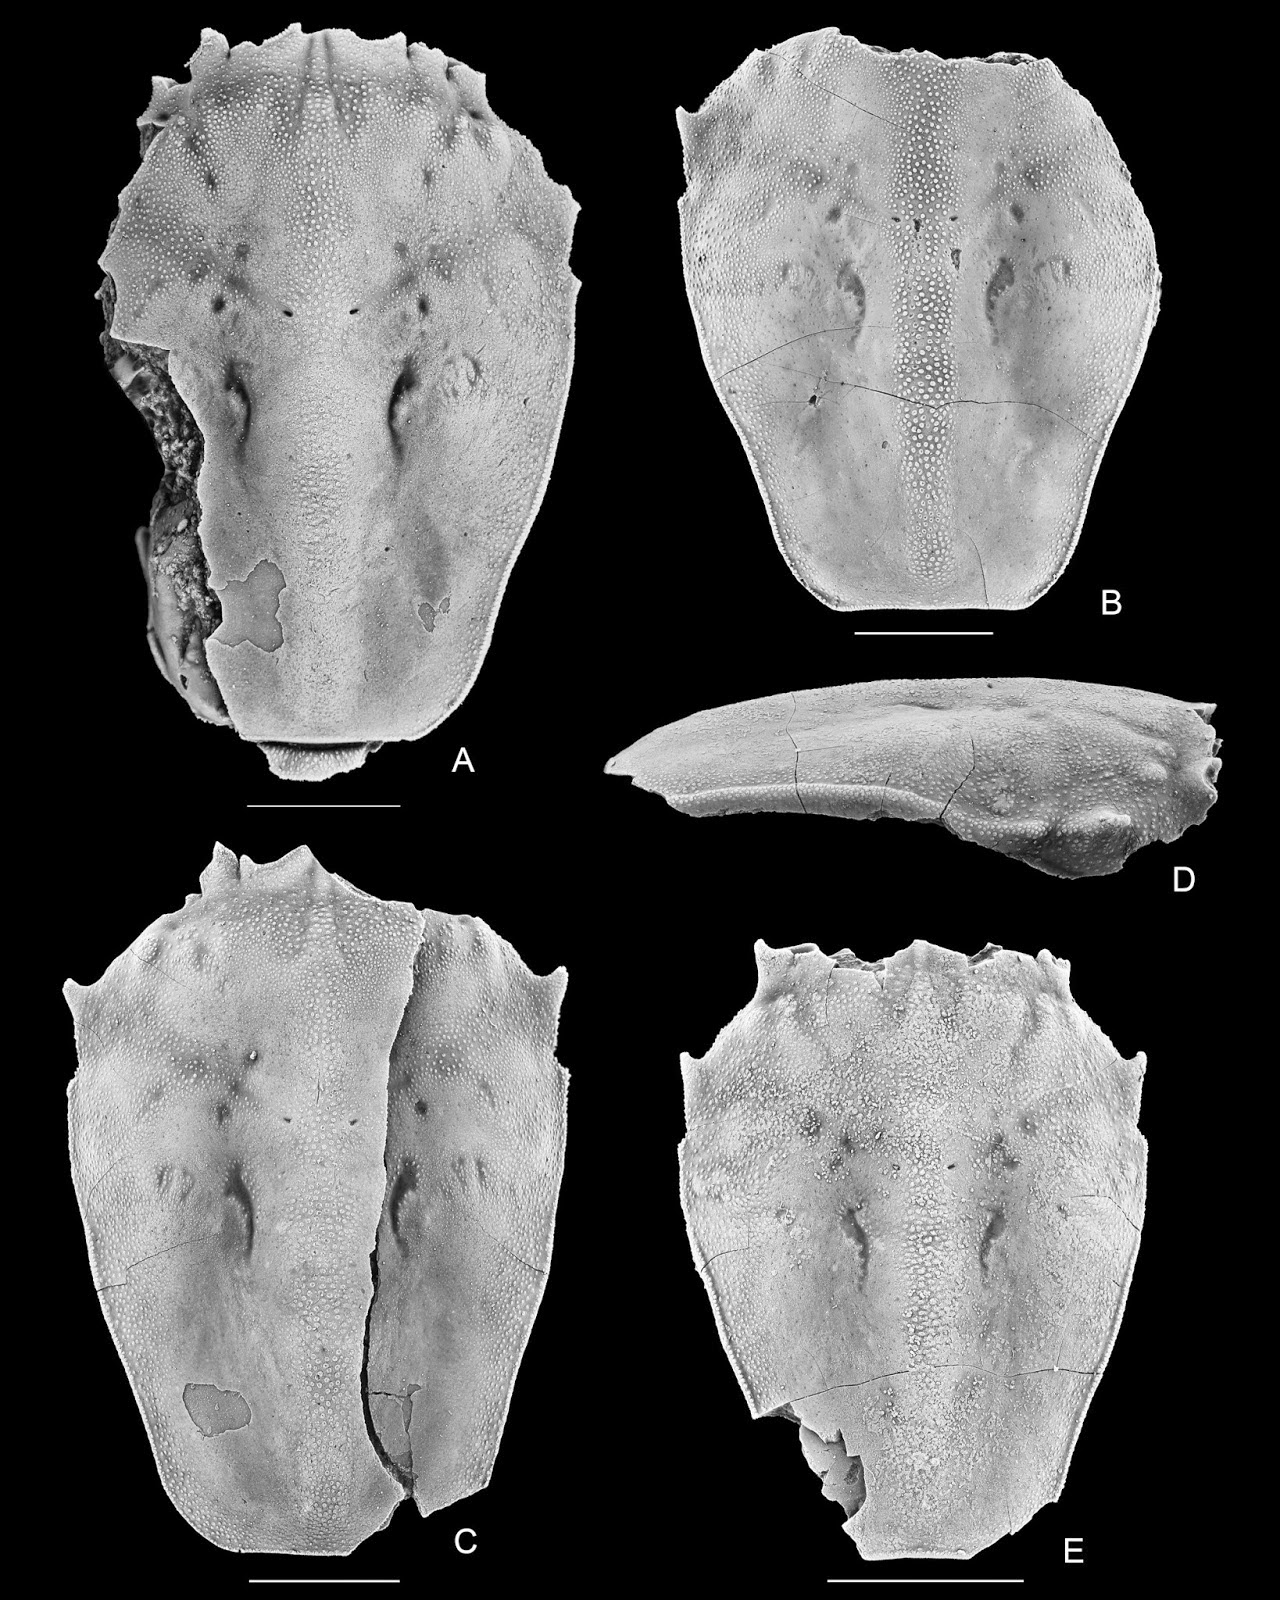 http://sciencythoughts.blogspot.co.uk/2014/12/a-new-species-of-palaeocorystid-crab.html